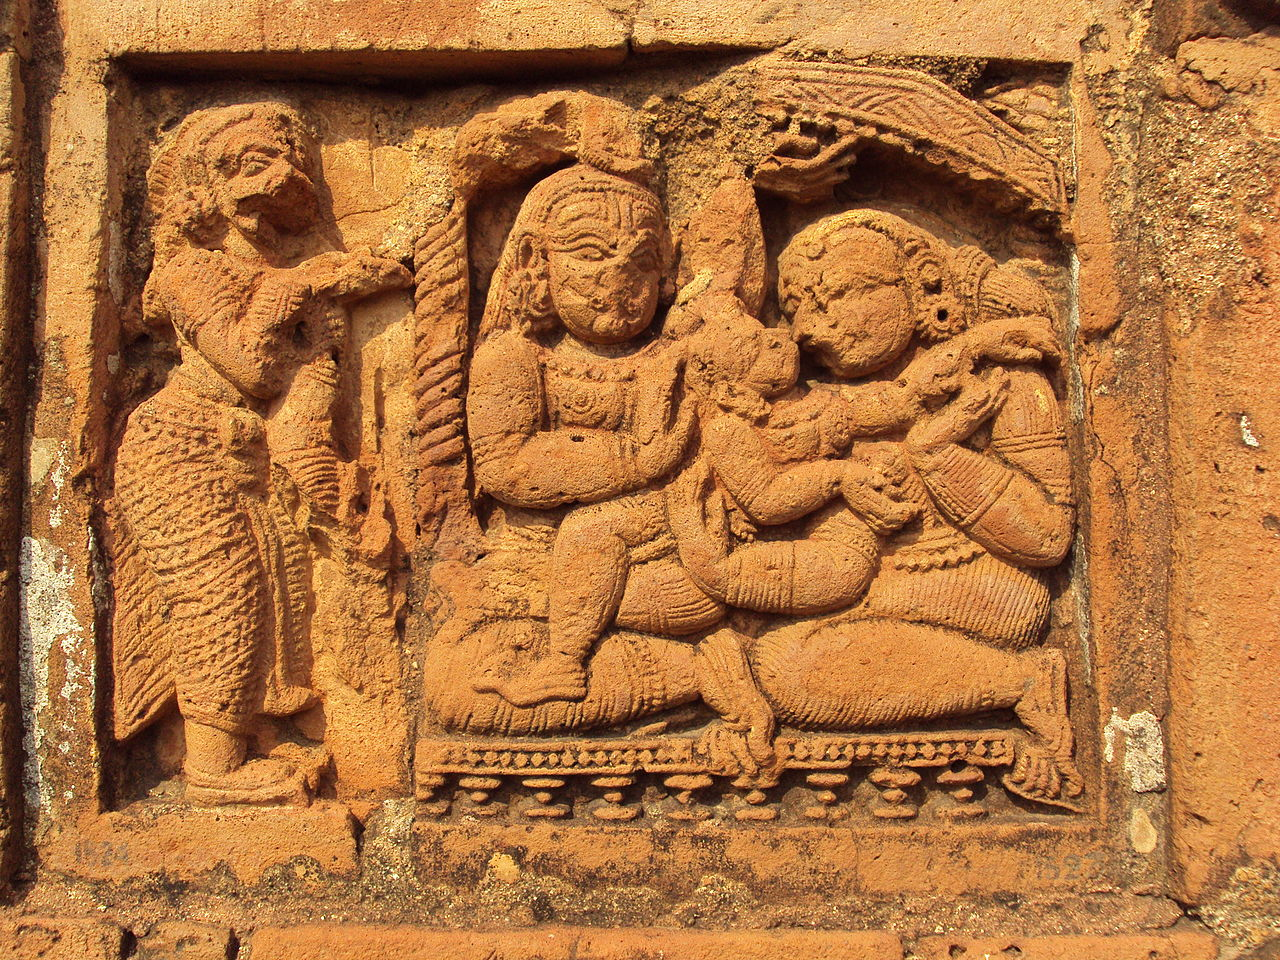 File:Terracotta work on Jor Bangla temple, Bishnupur.JPG ...